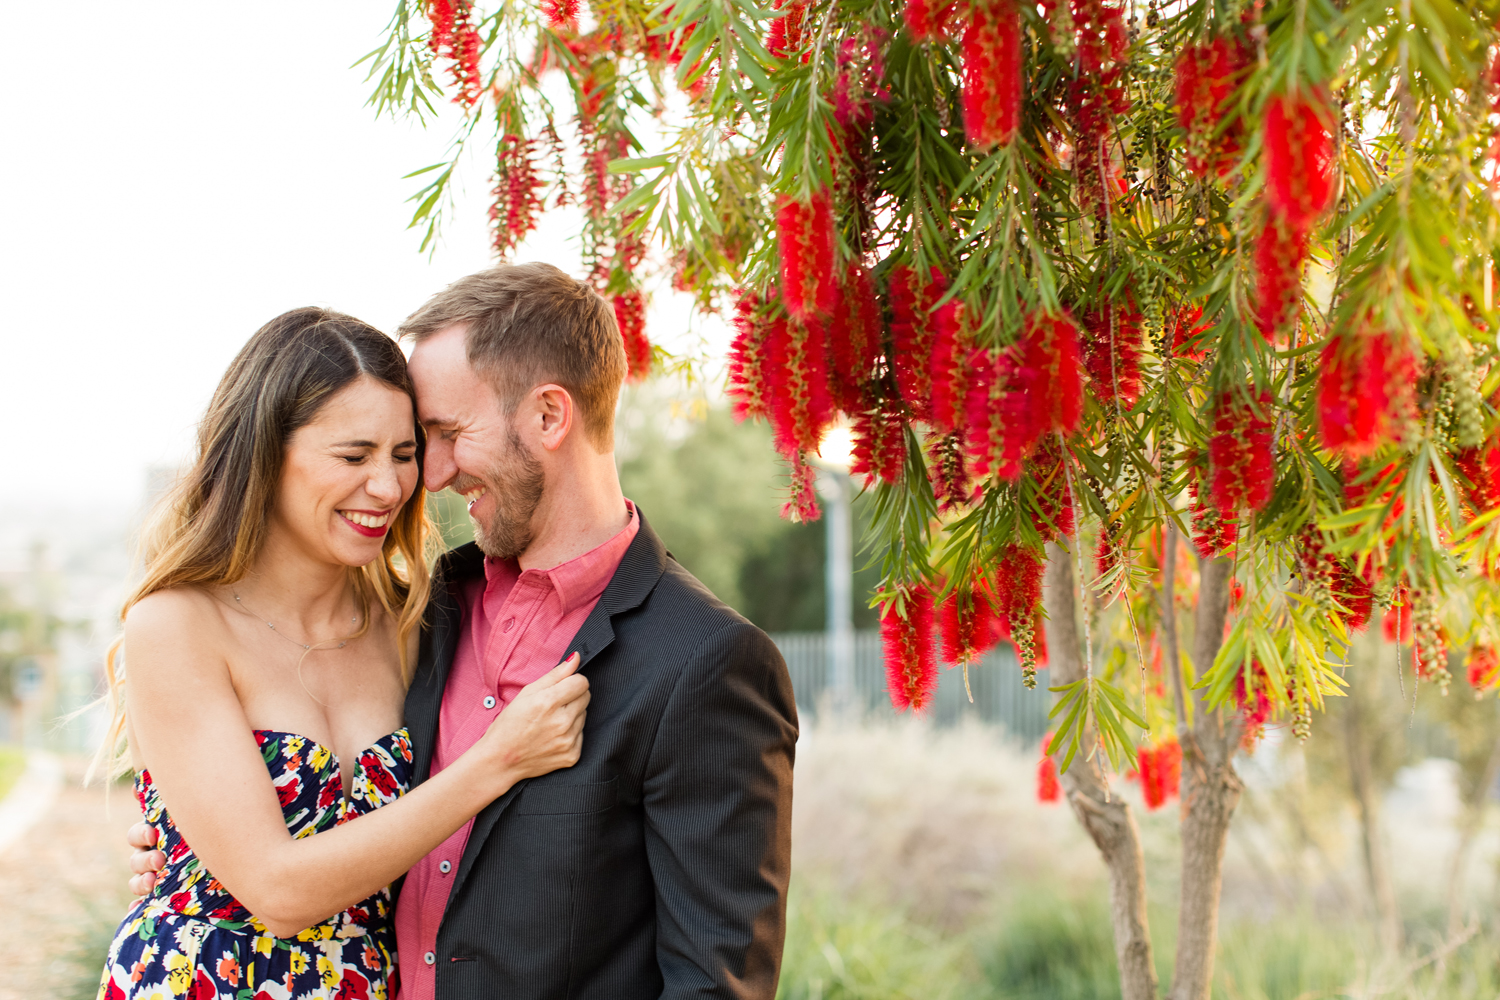 barnsdall-park-engagement-photography009.jpg